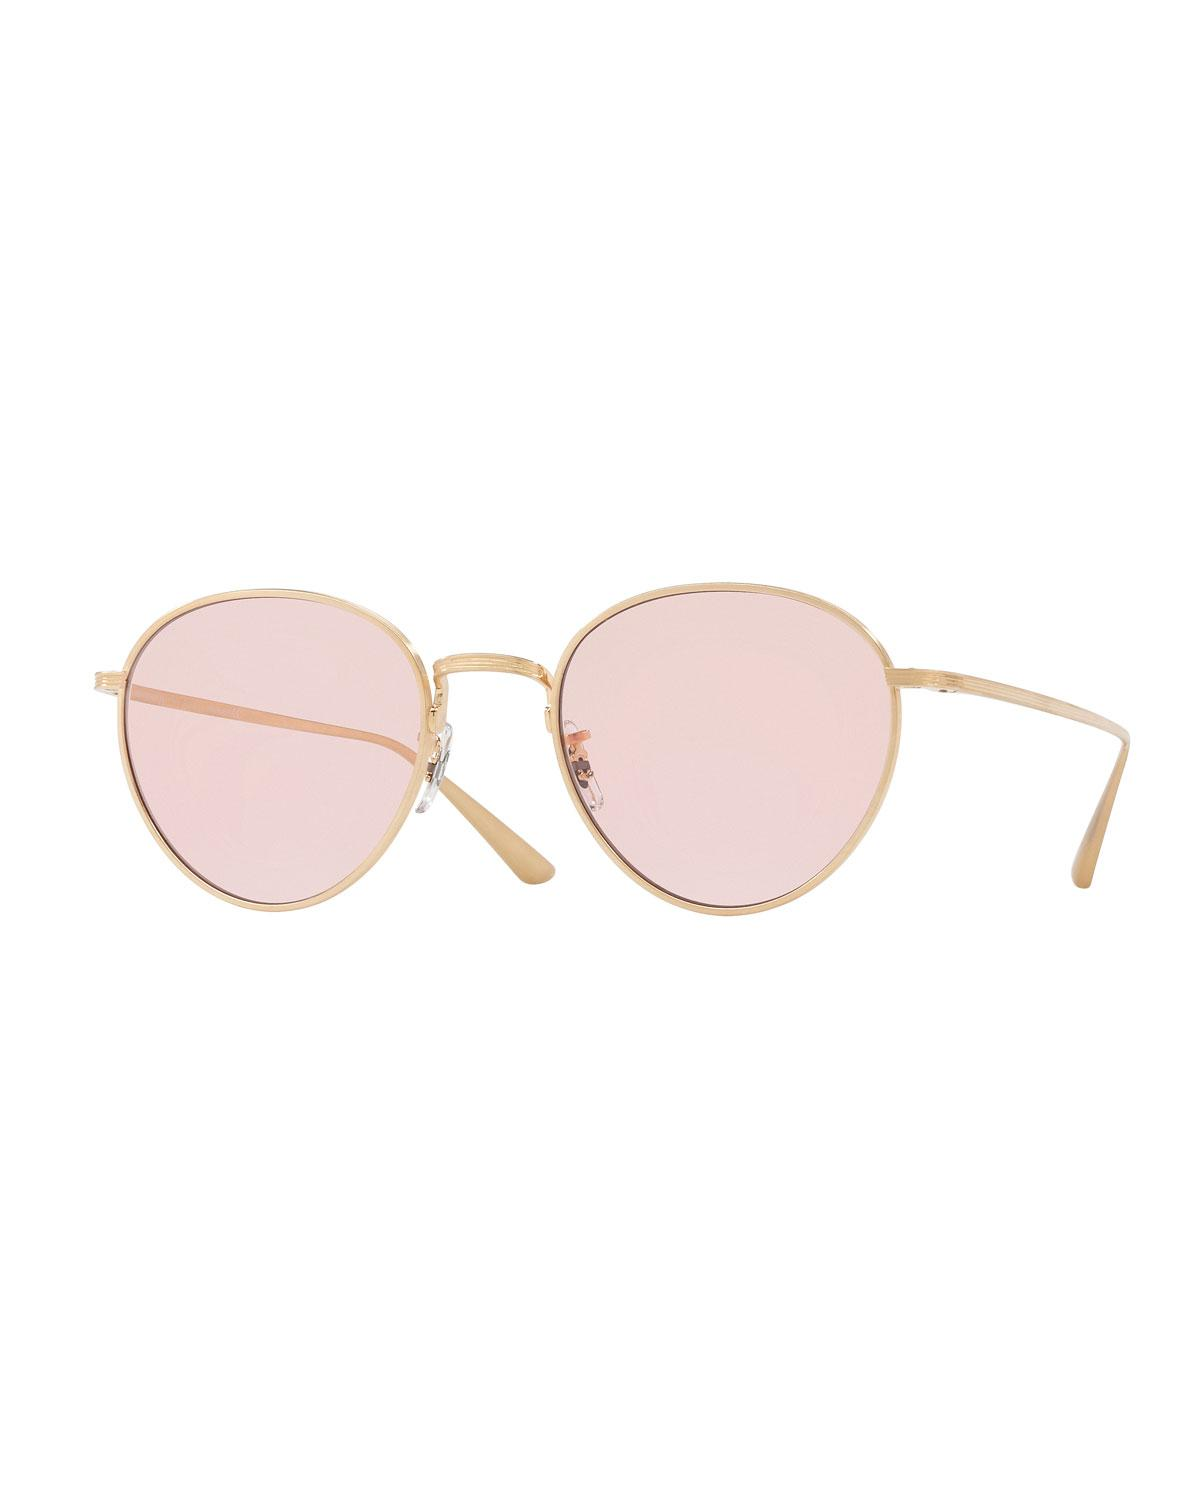 4f931106b71 Lyst - Oliver Peoples Brownstone Photochromic Round Titanium ...